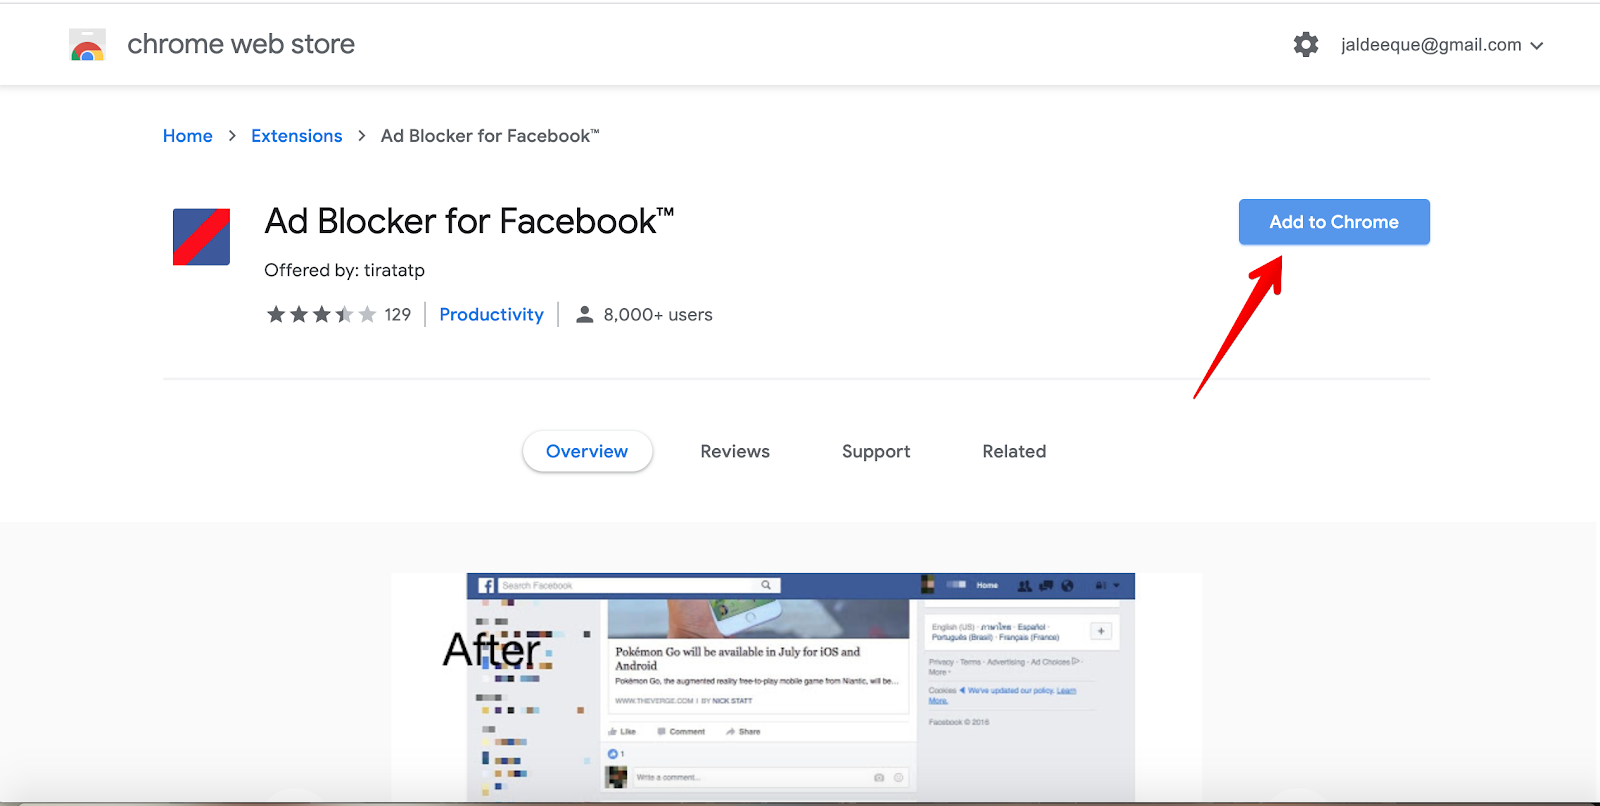 ad blocker for facebook